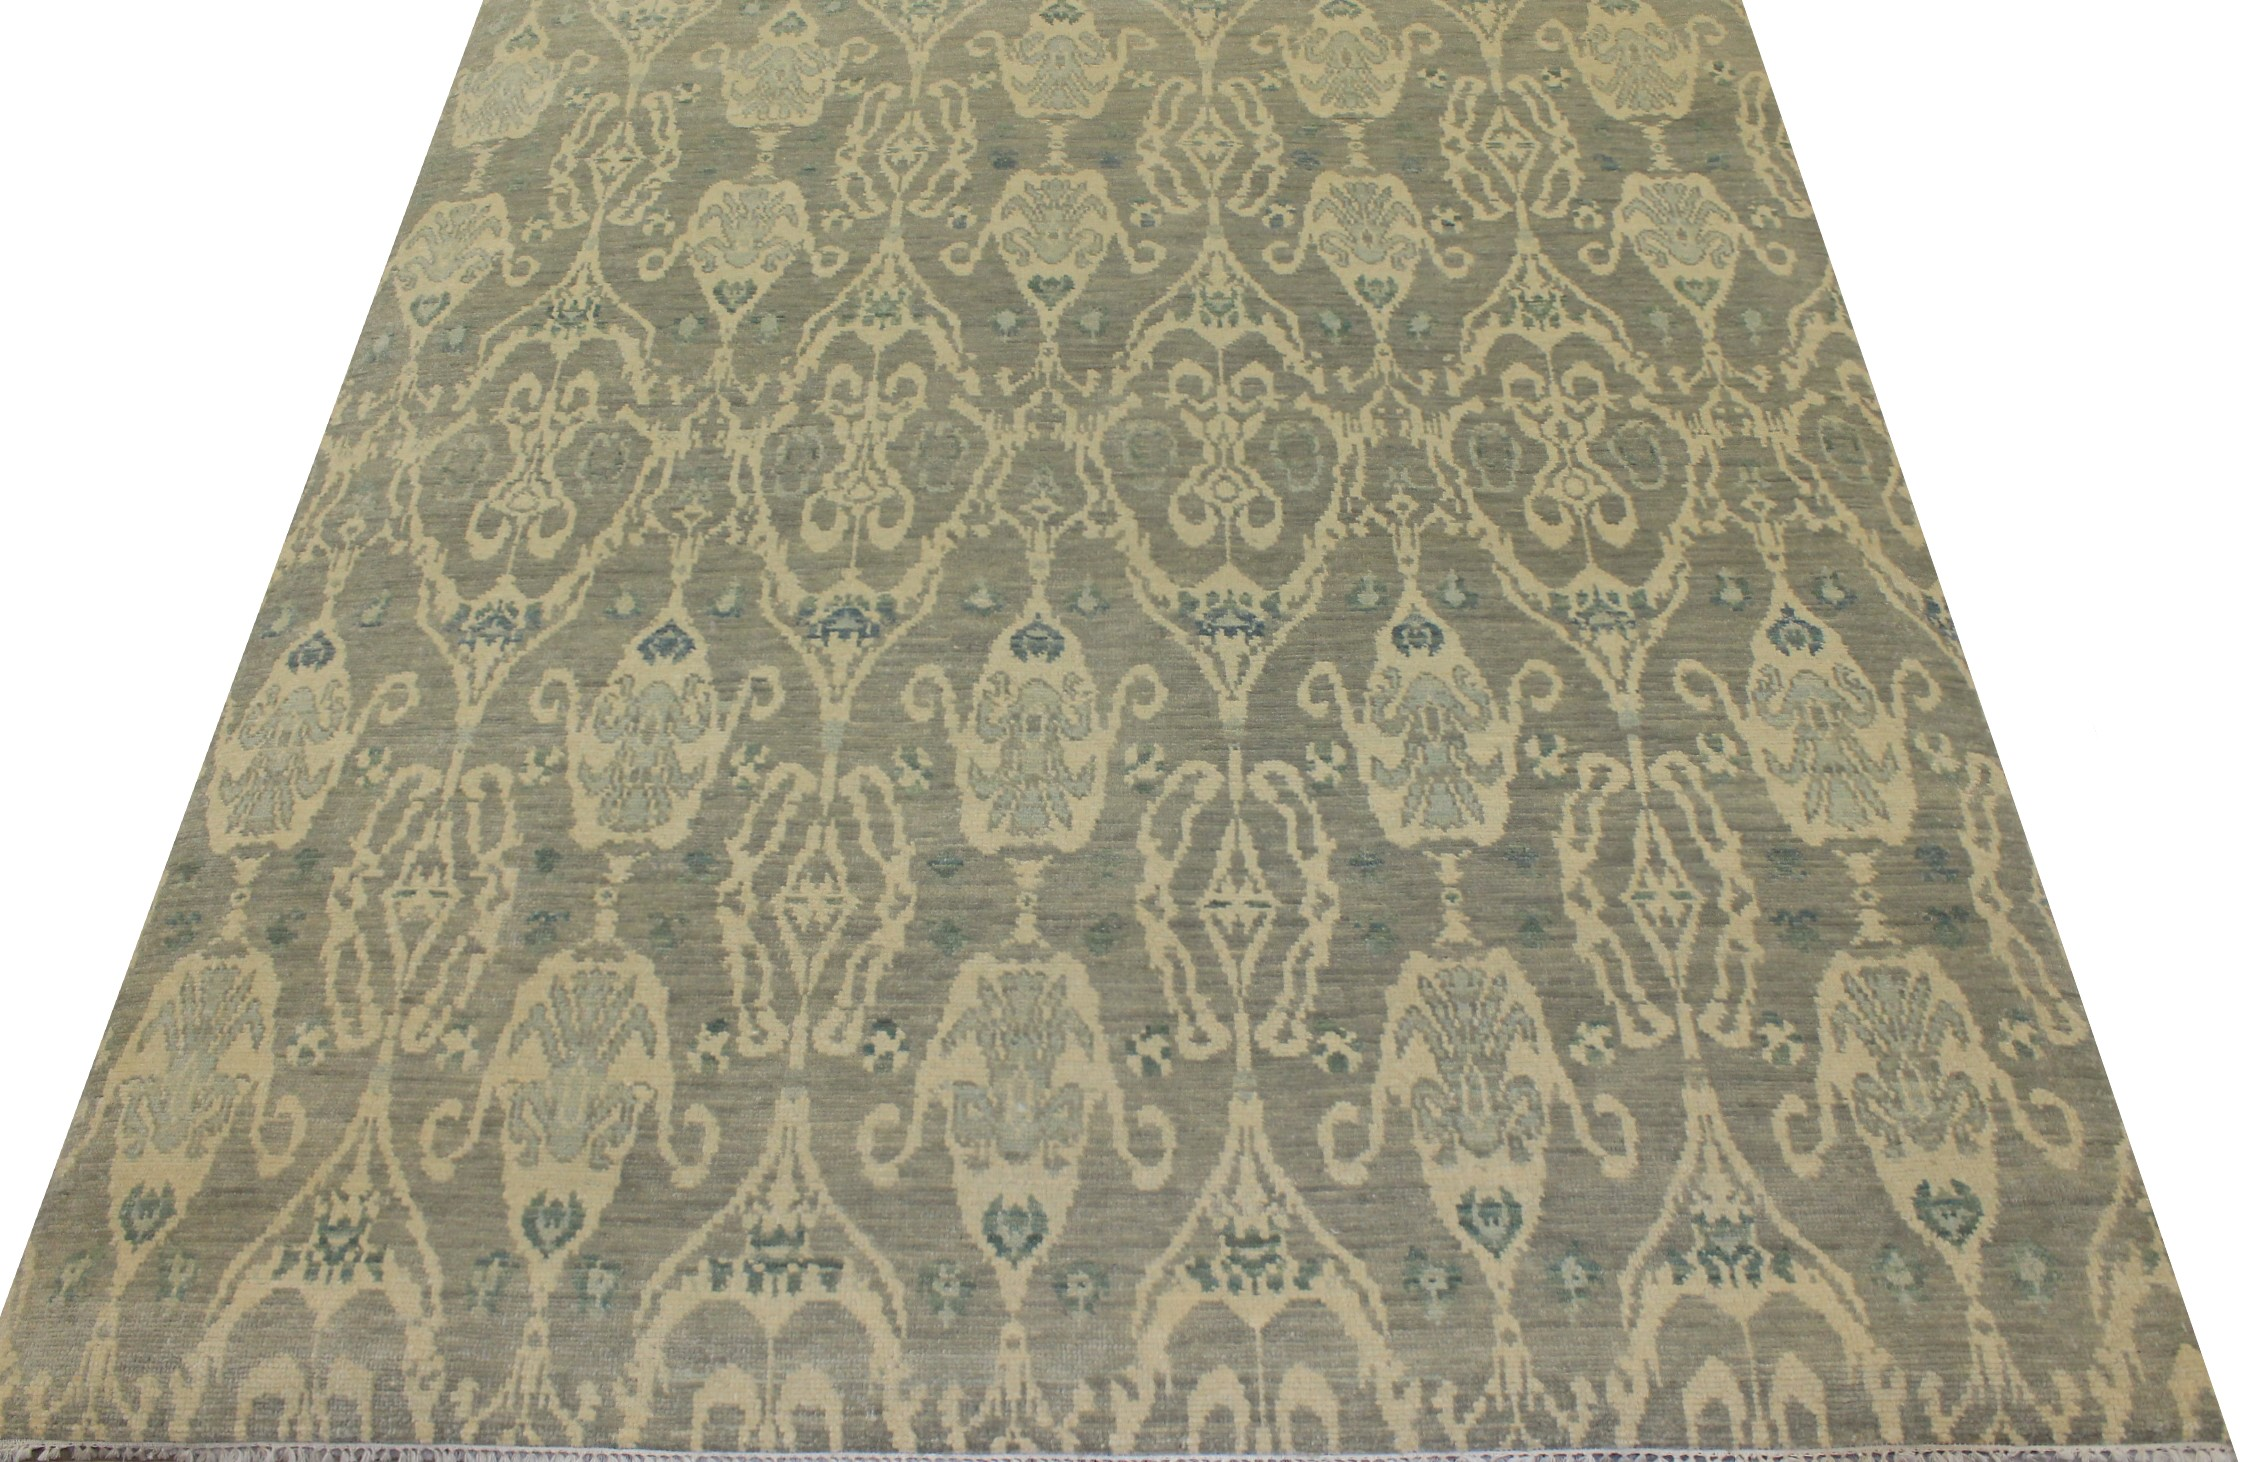 8x10 Contemporary Hand Knotted Wool Area Rug - MR18081